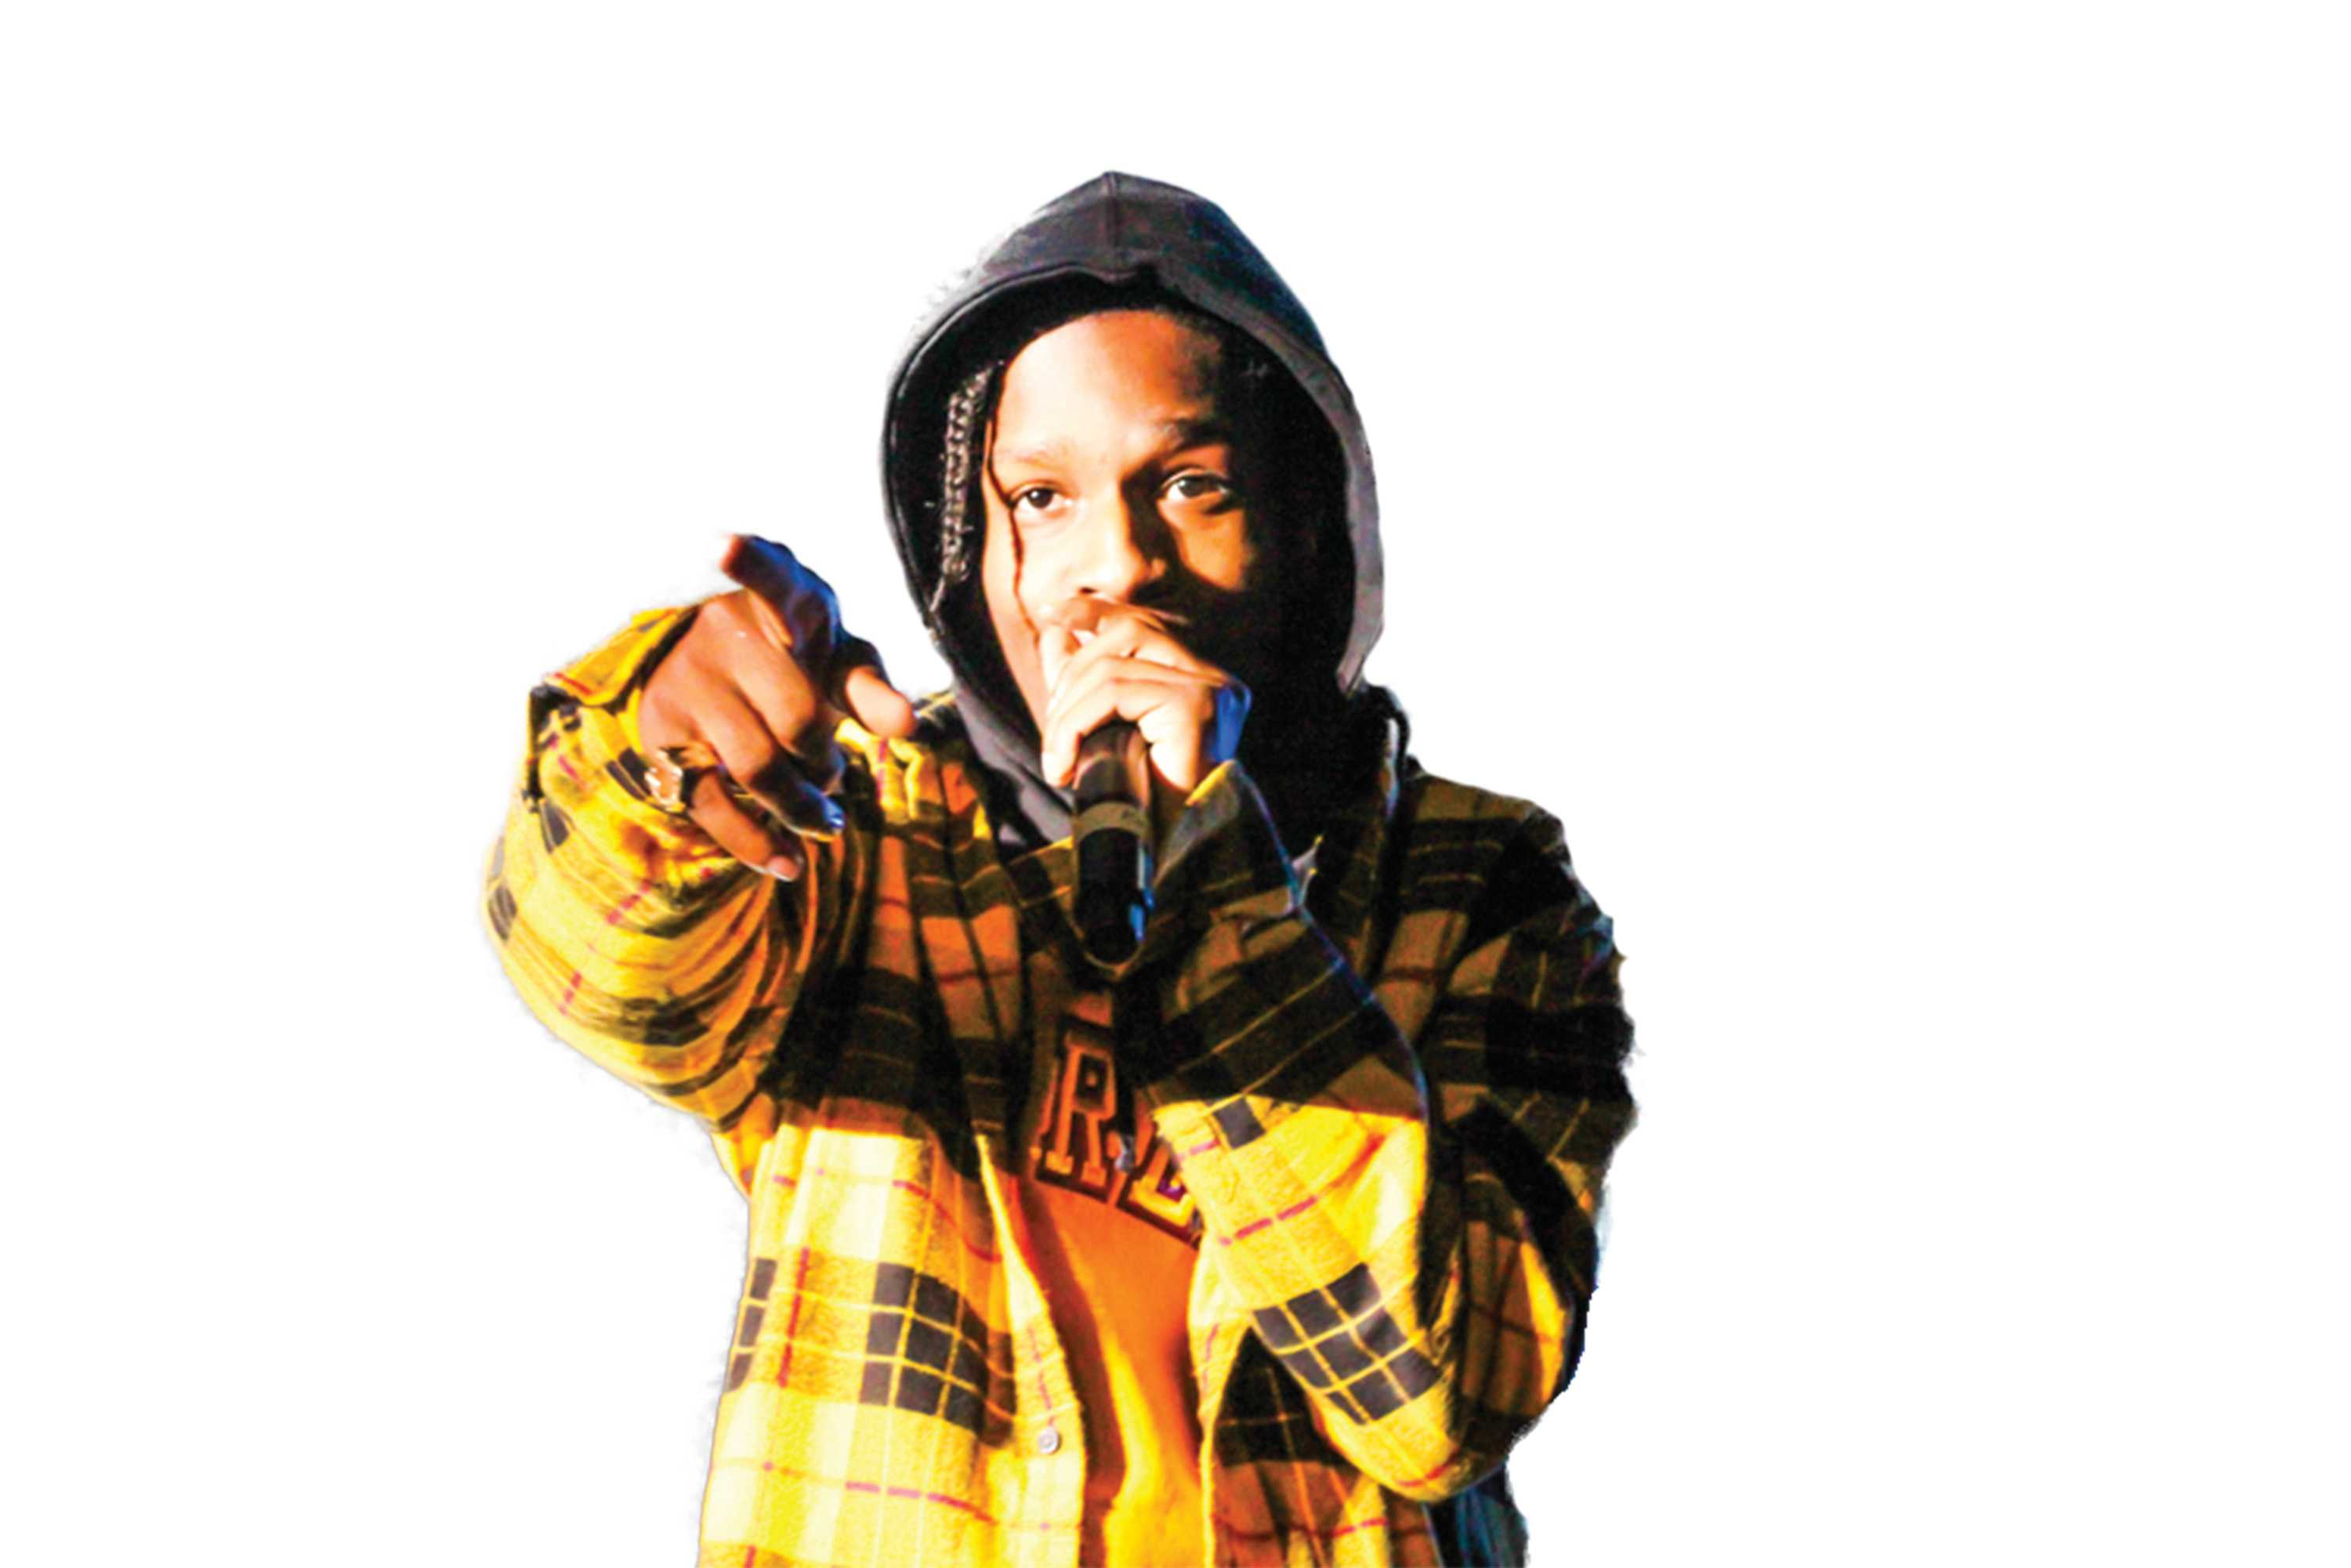 informative essay on kendrick lamar This essay was originally presented at the 2016 awp conference panel the  literary genius of kendrick lamar and has been edited for.